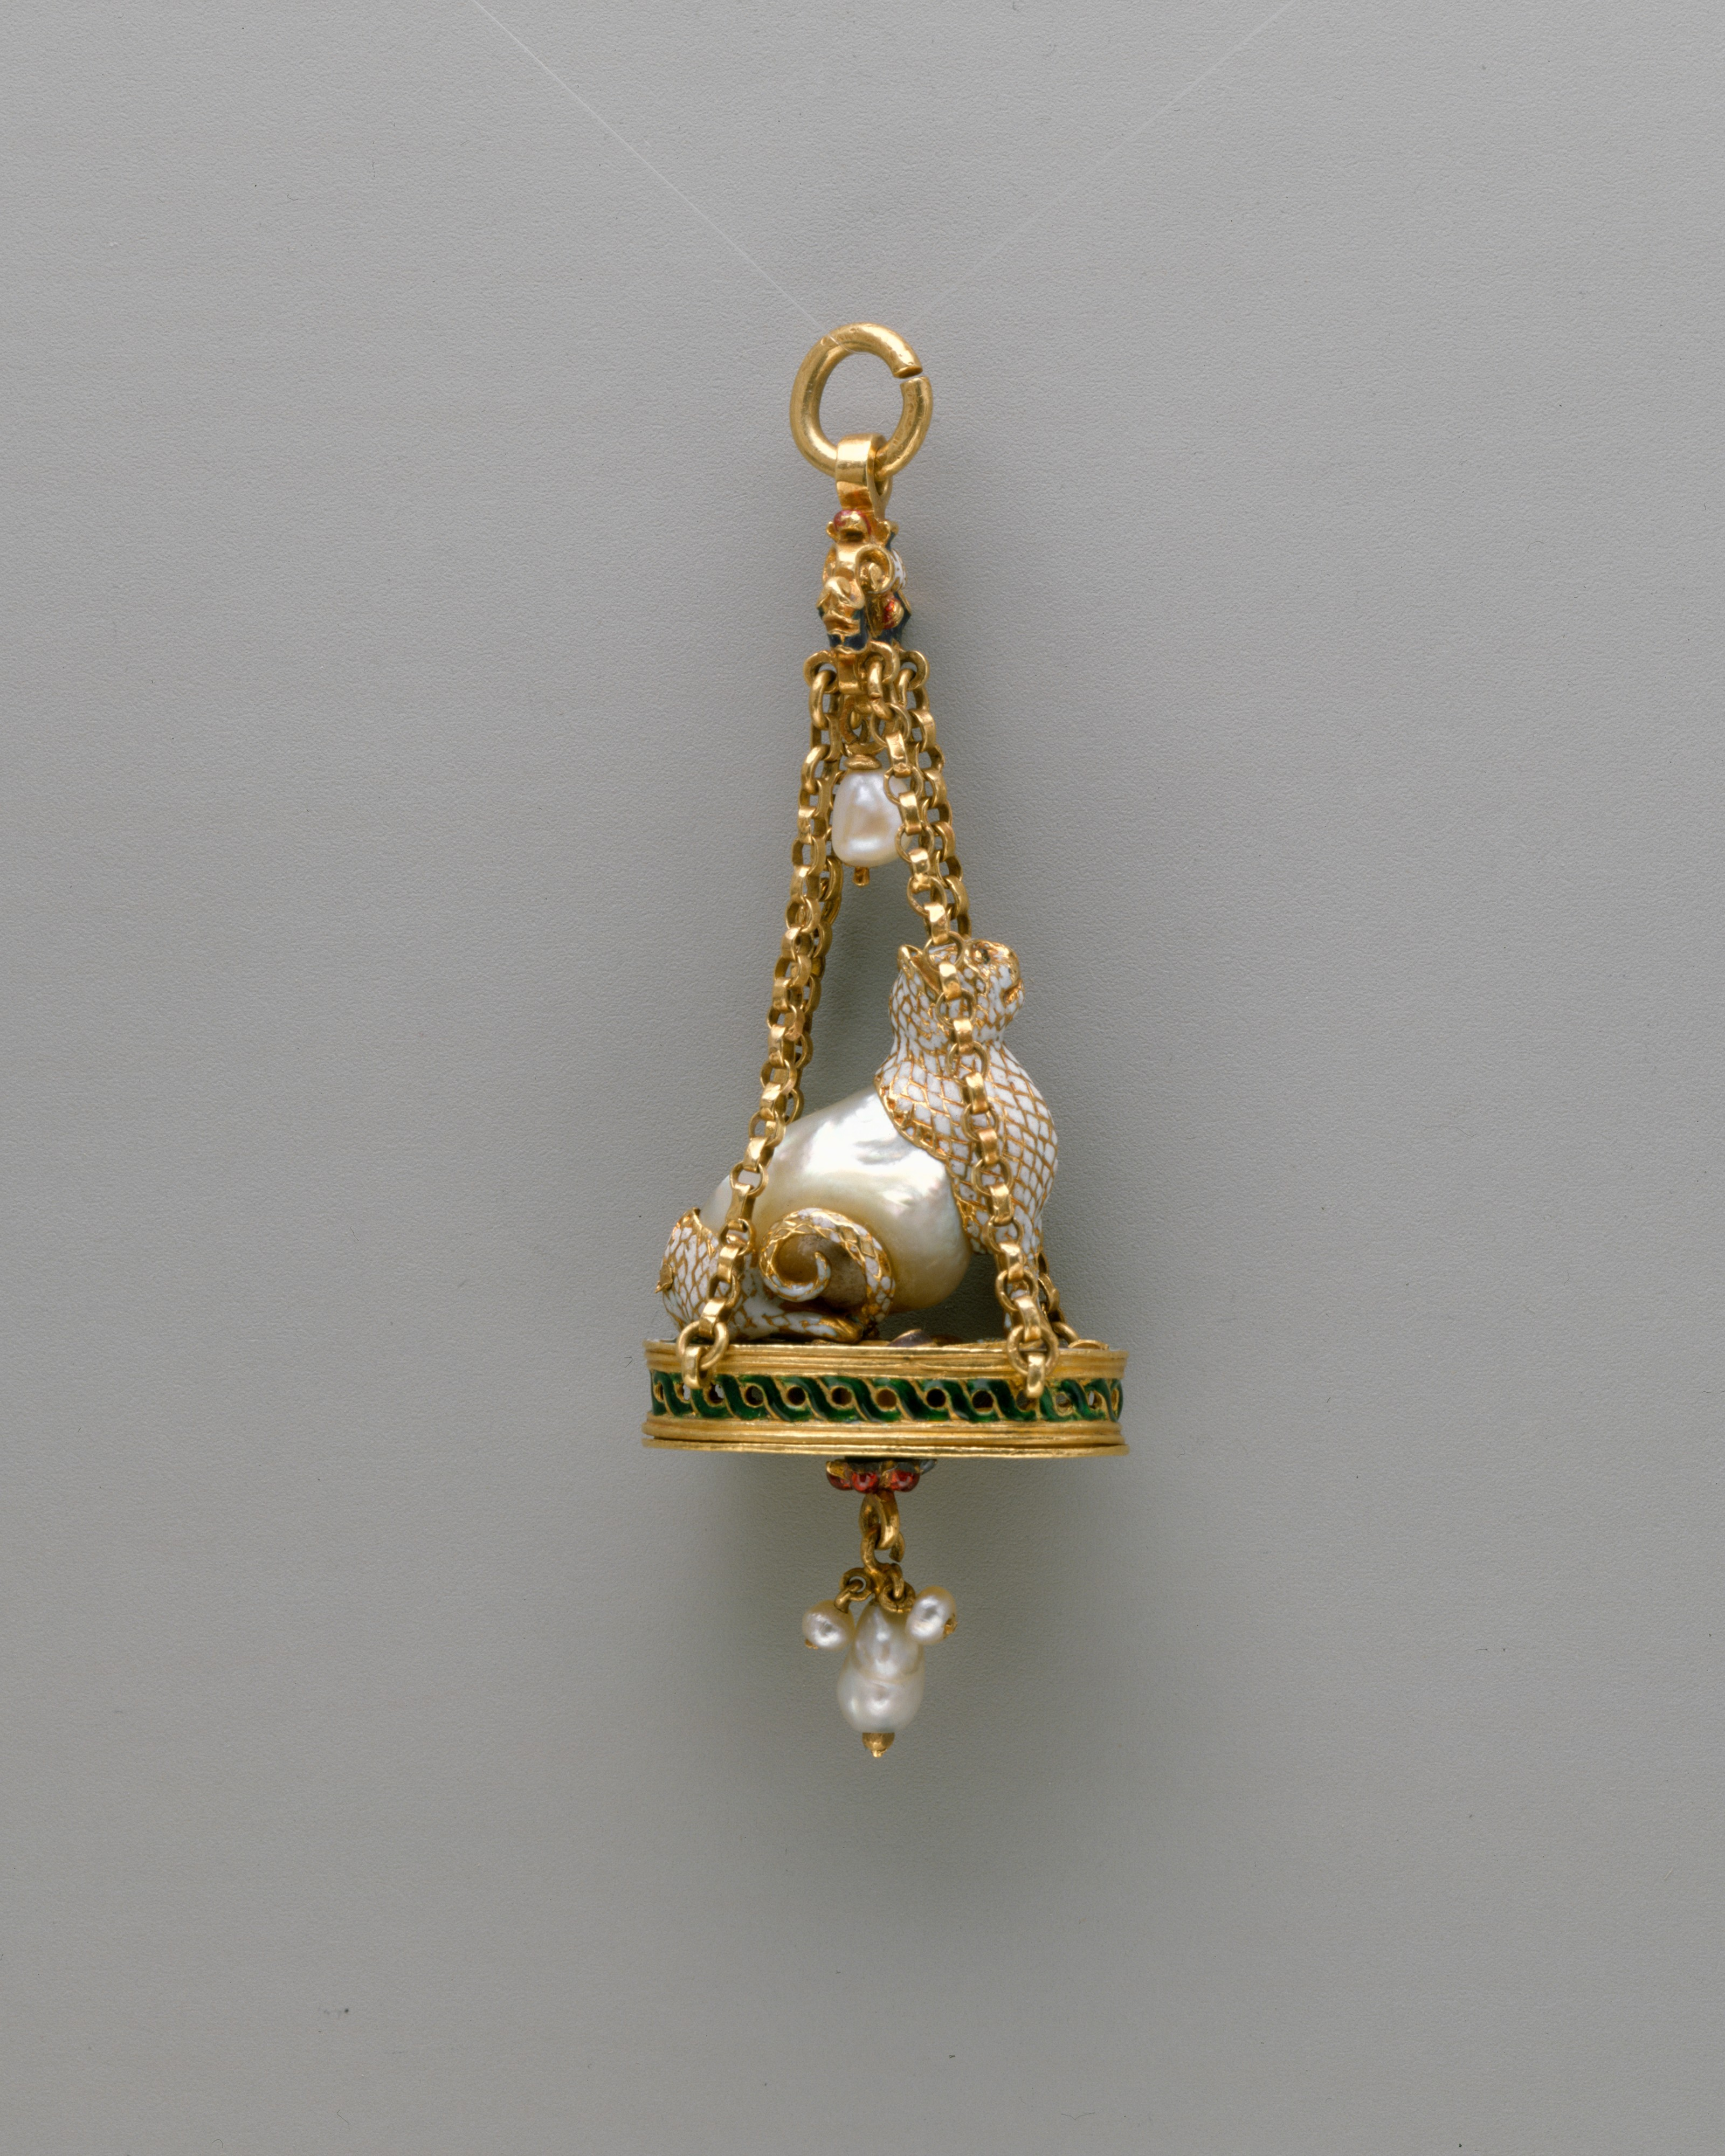 Pendant in the form of a seated cat.